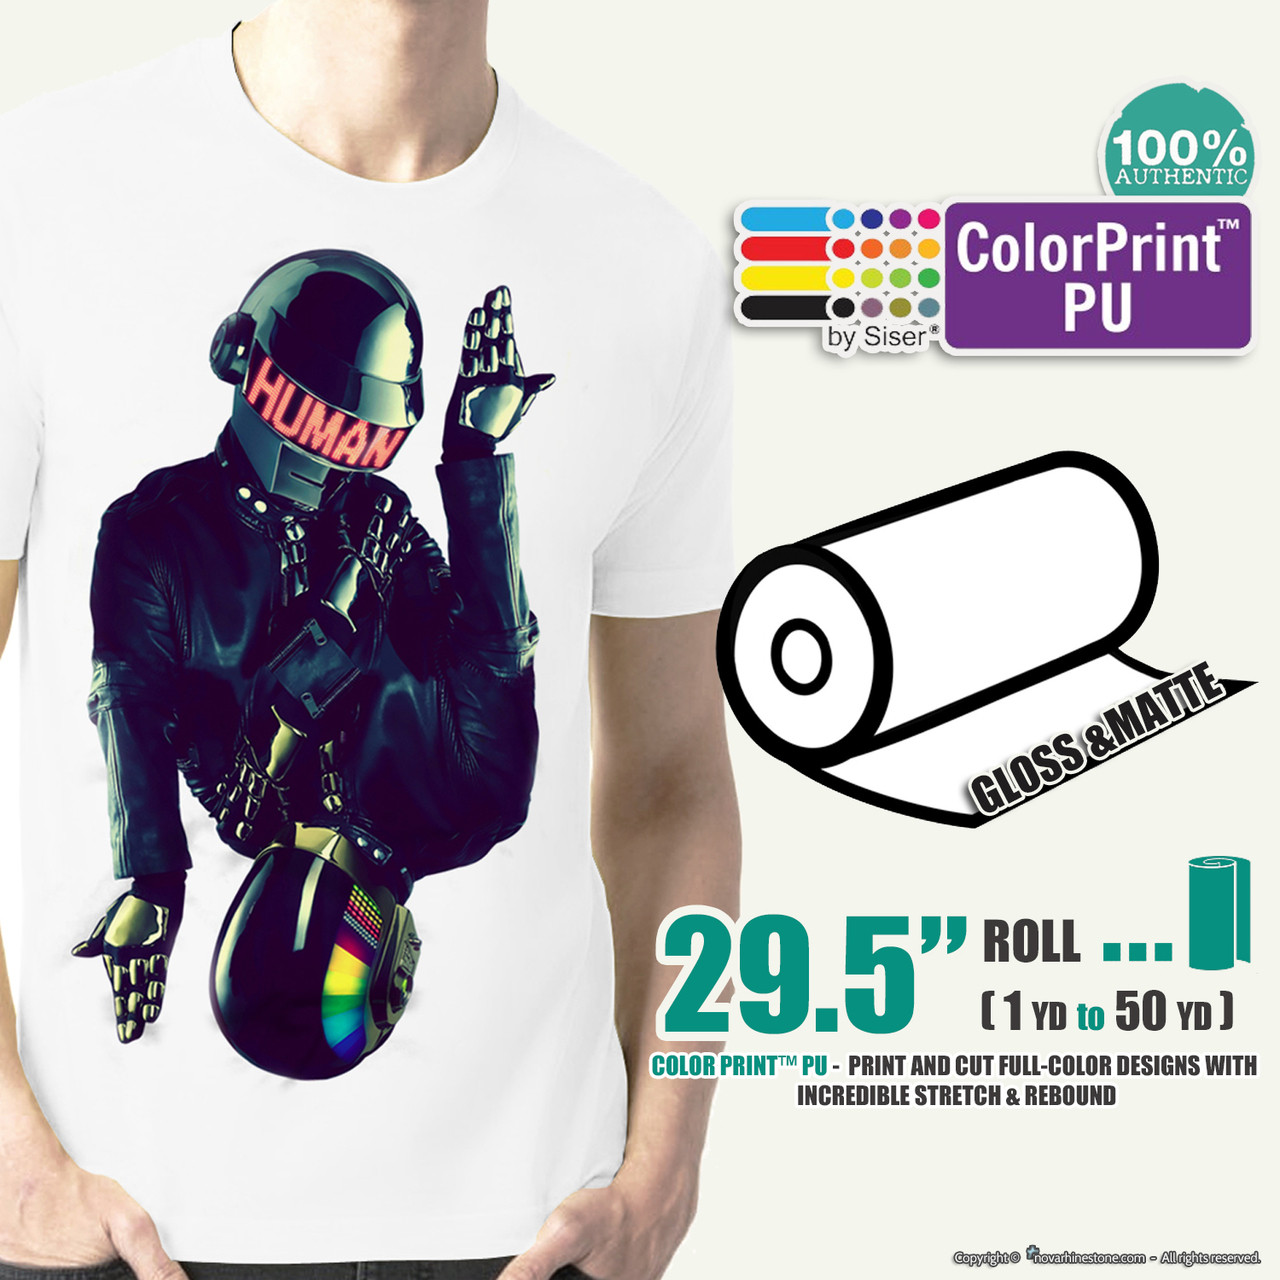 photo regarding Siser Colorprint Easy Printable Heat Transfer Vinyl referred to as Siser ColorPrint PU - 29.5\